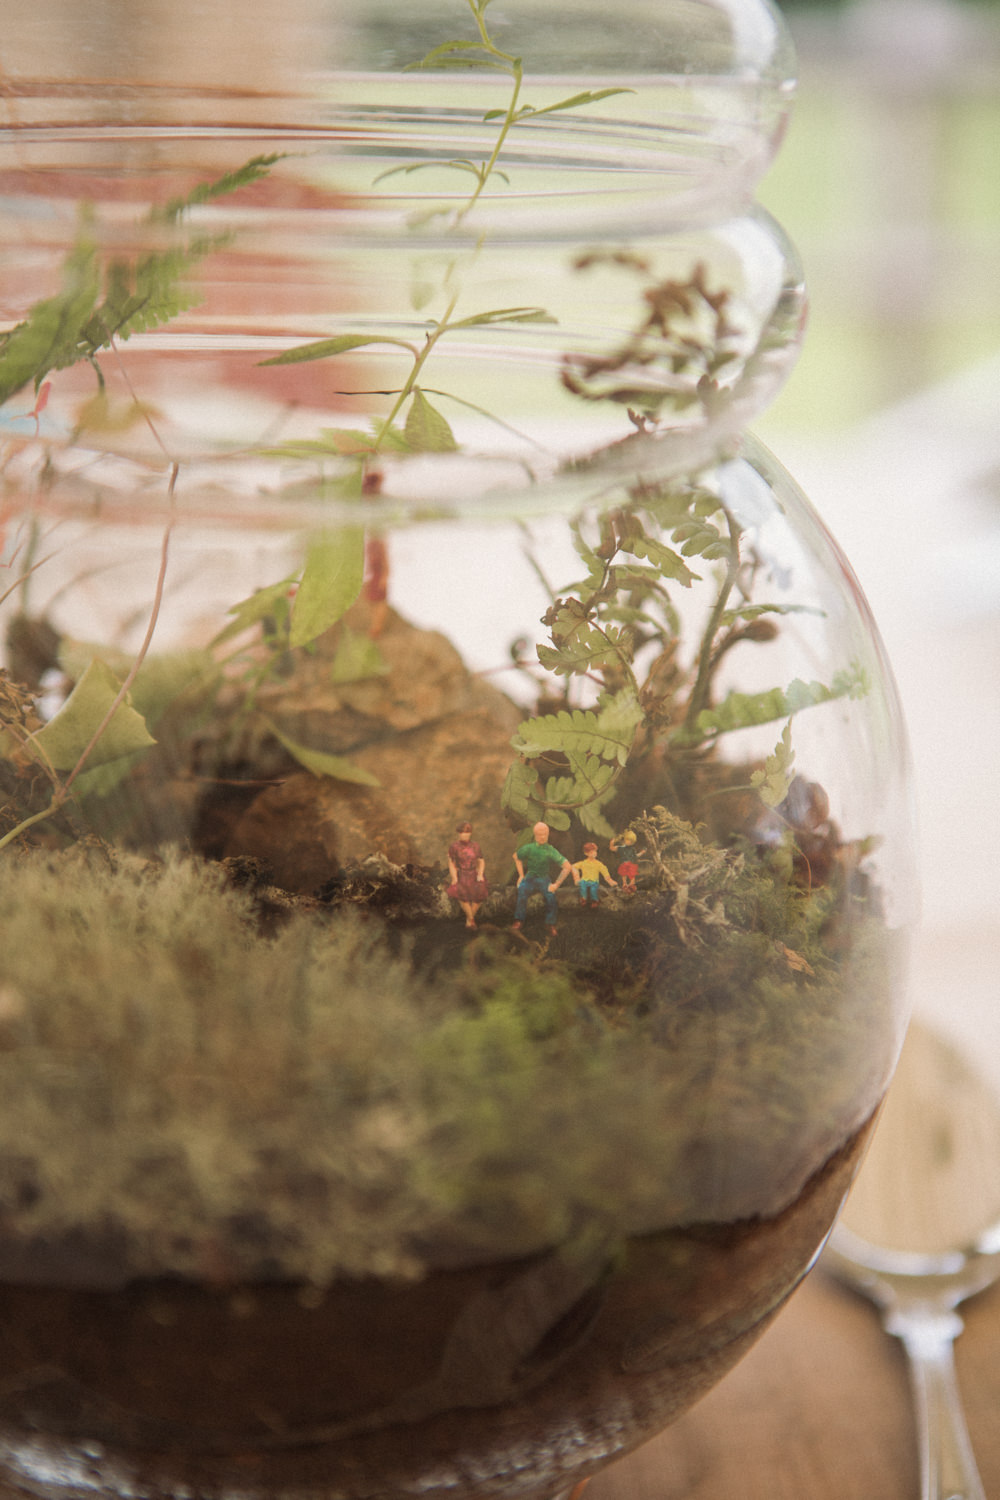 Terrarium Table Centre Miniature Figurines Middle Coombe Farm Wedding Emma Stoner Photo